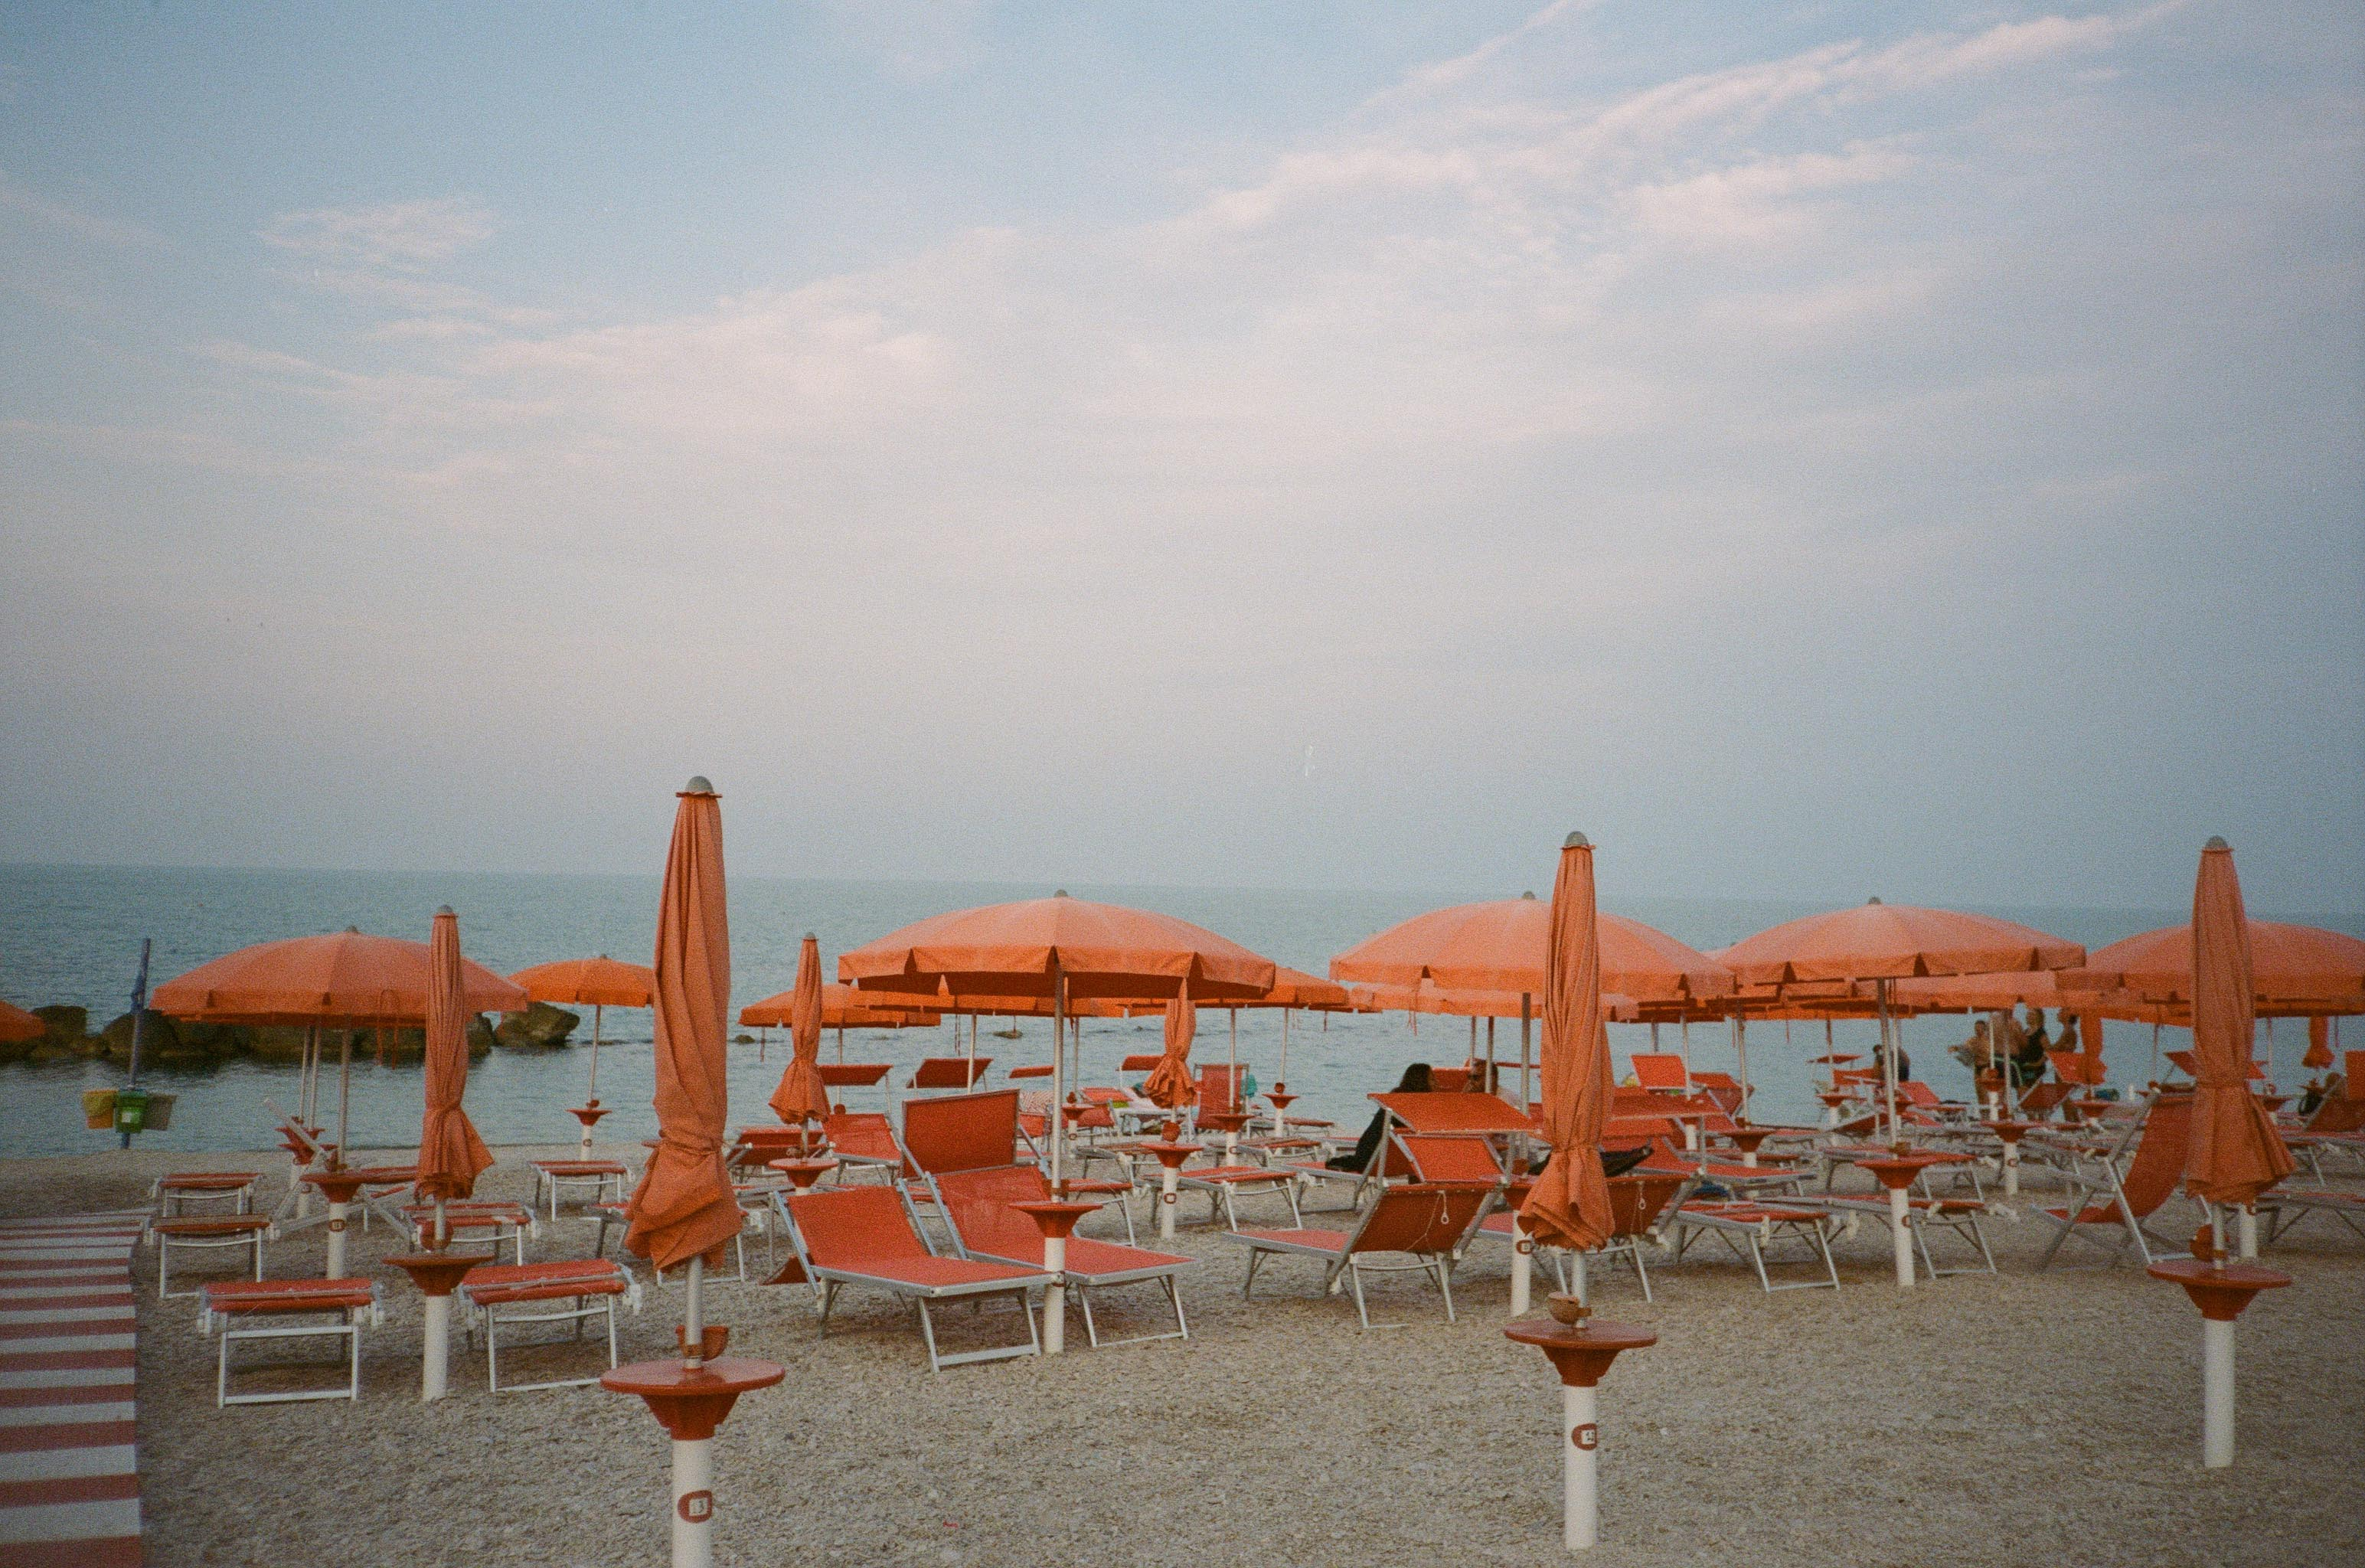 Multiple orange sun umbrellas and various orange lounge chairs are set up in synchronization on a sandy beach. Some umbrellas are opened fully, and some are  closed.